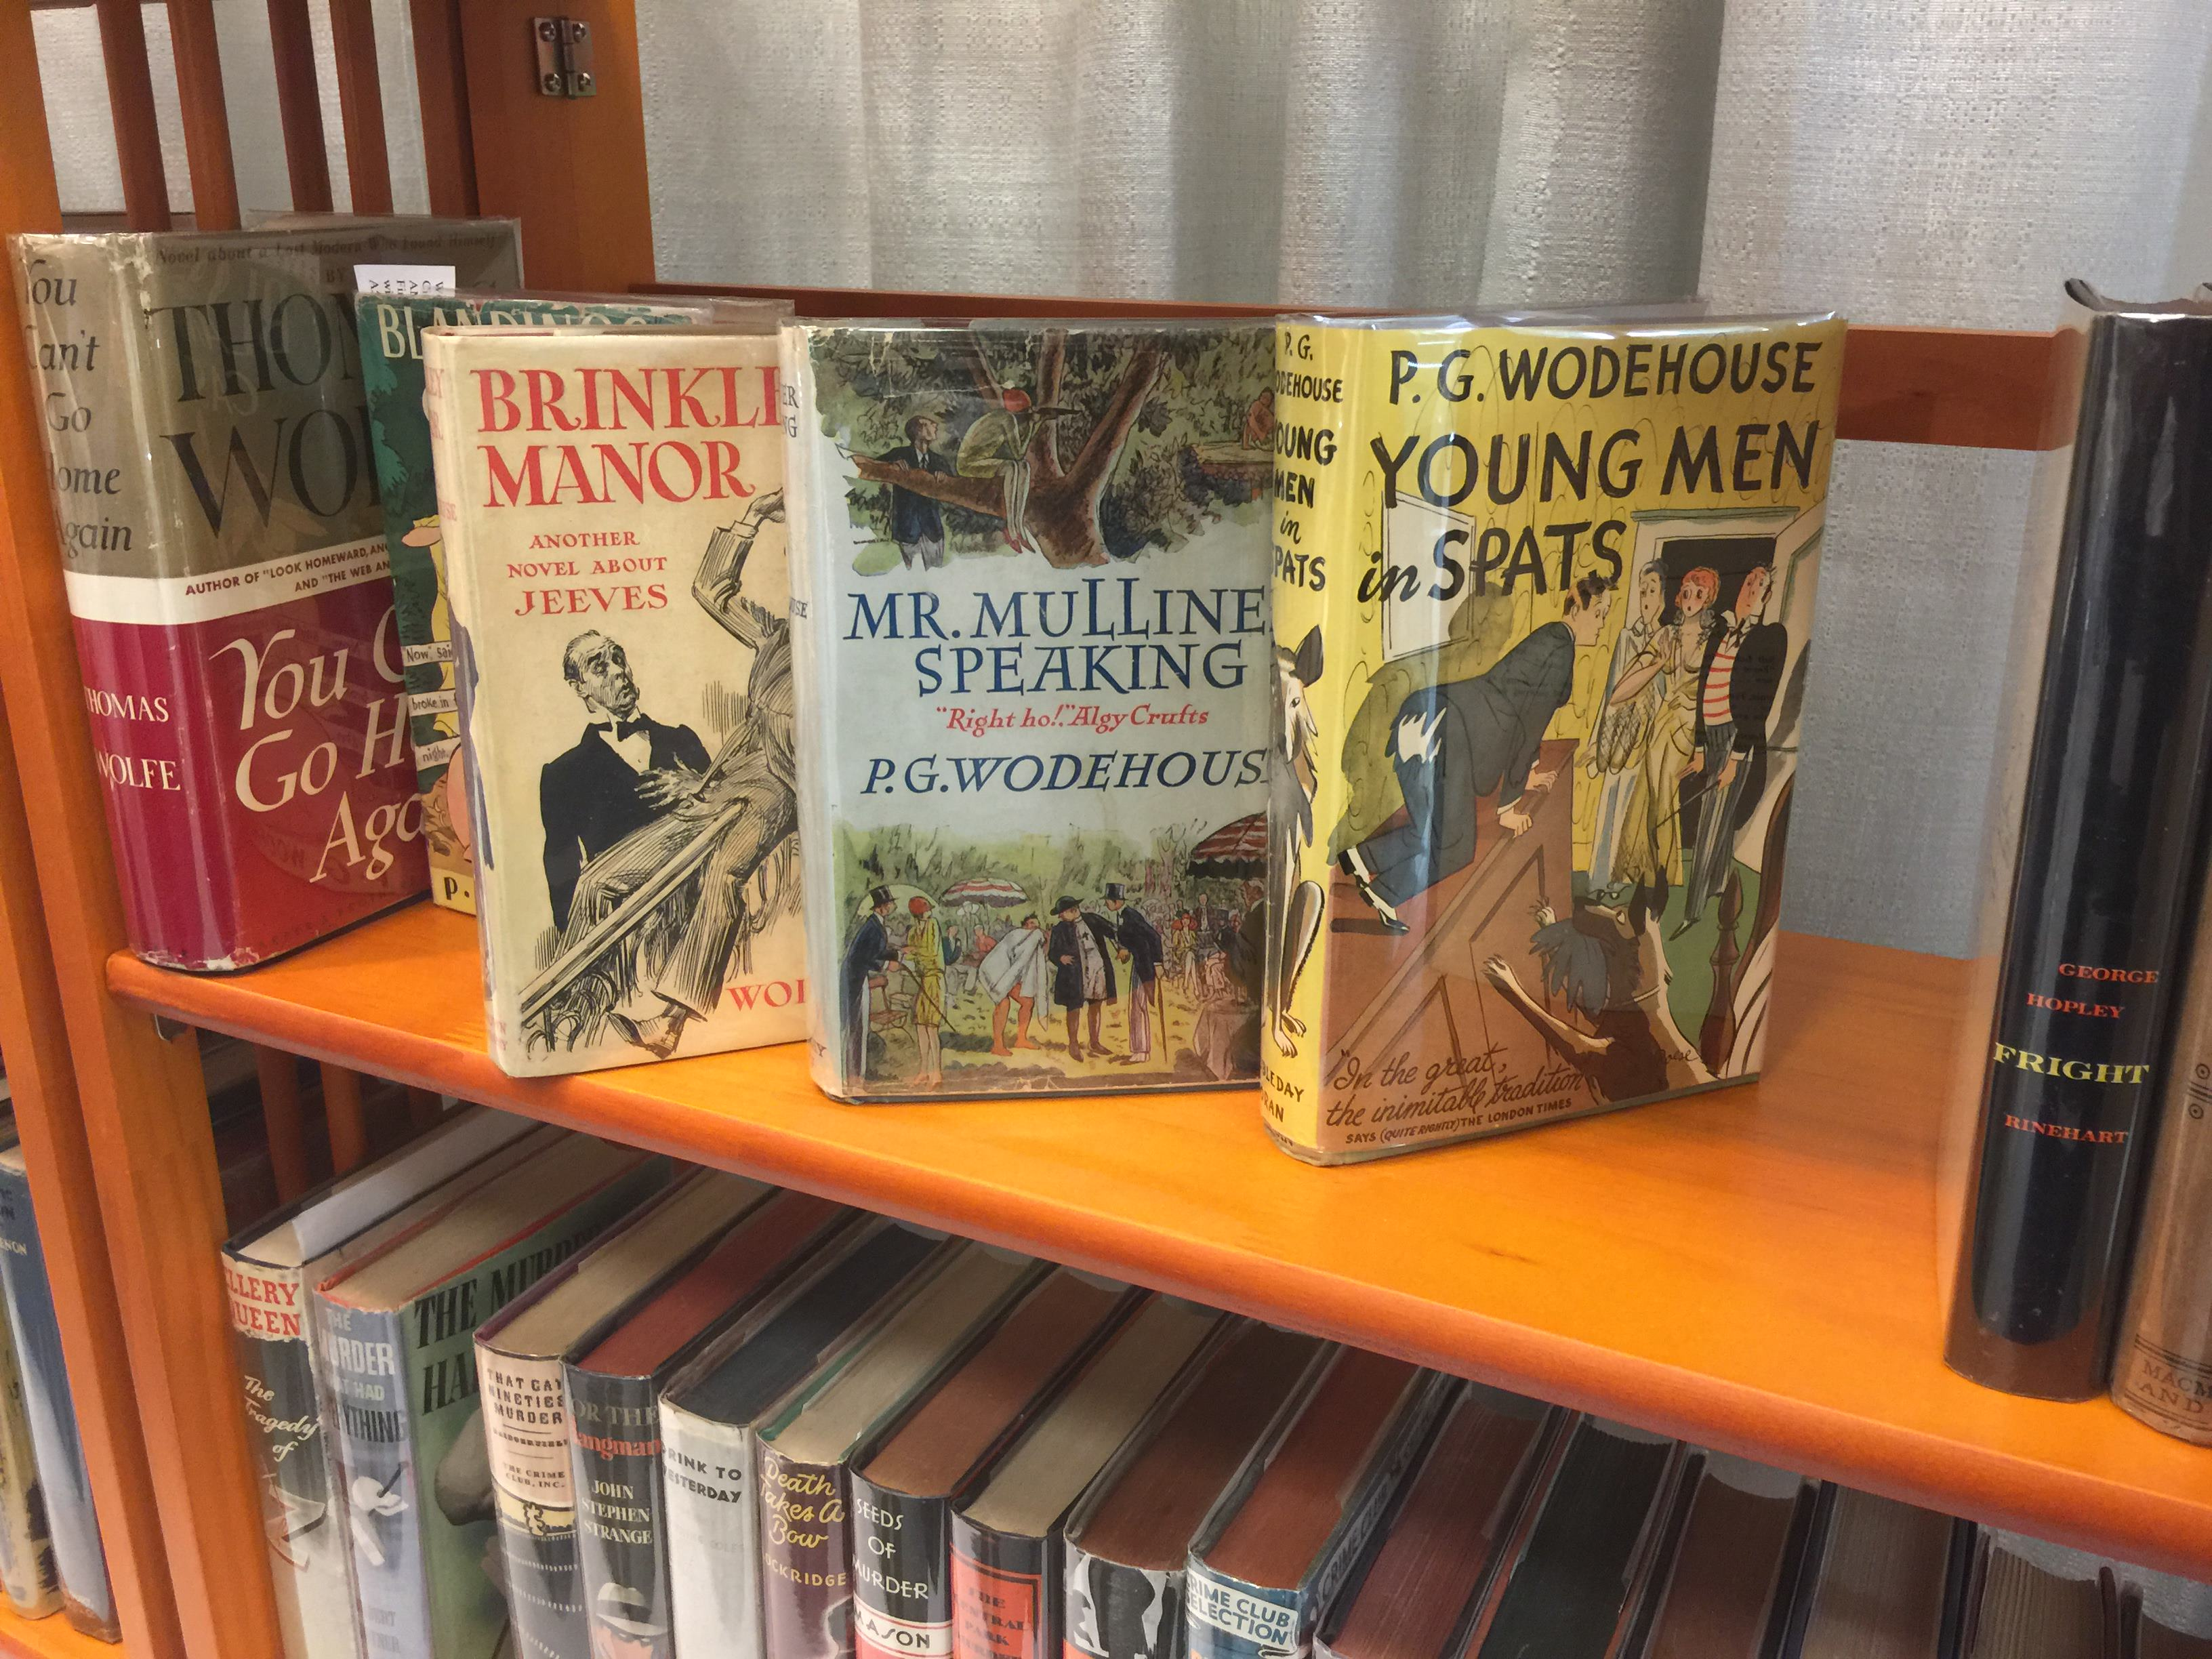 P.G. Wodehouse - three American first editions